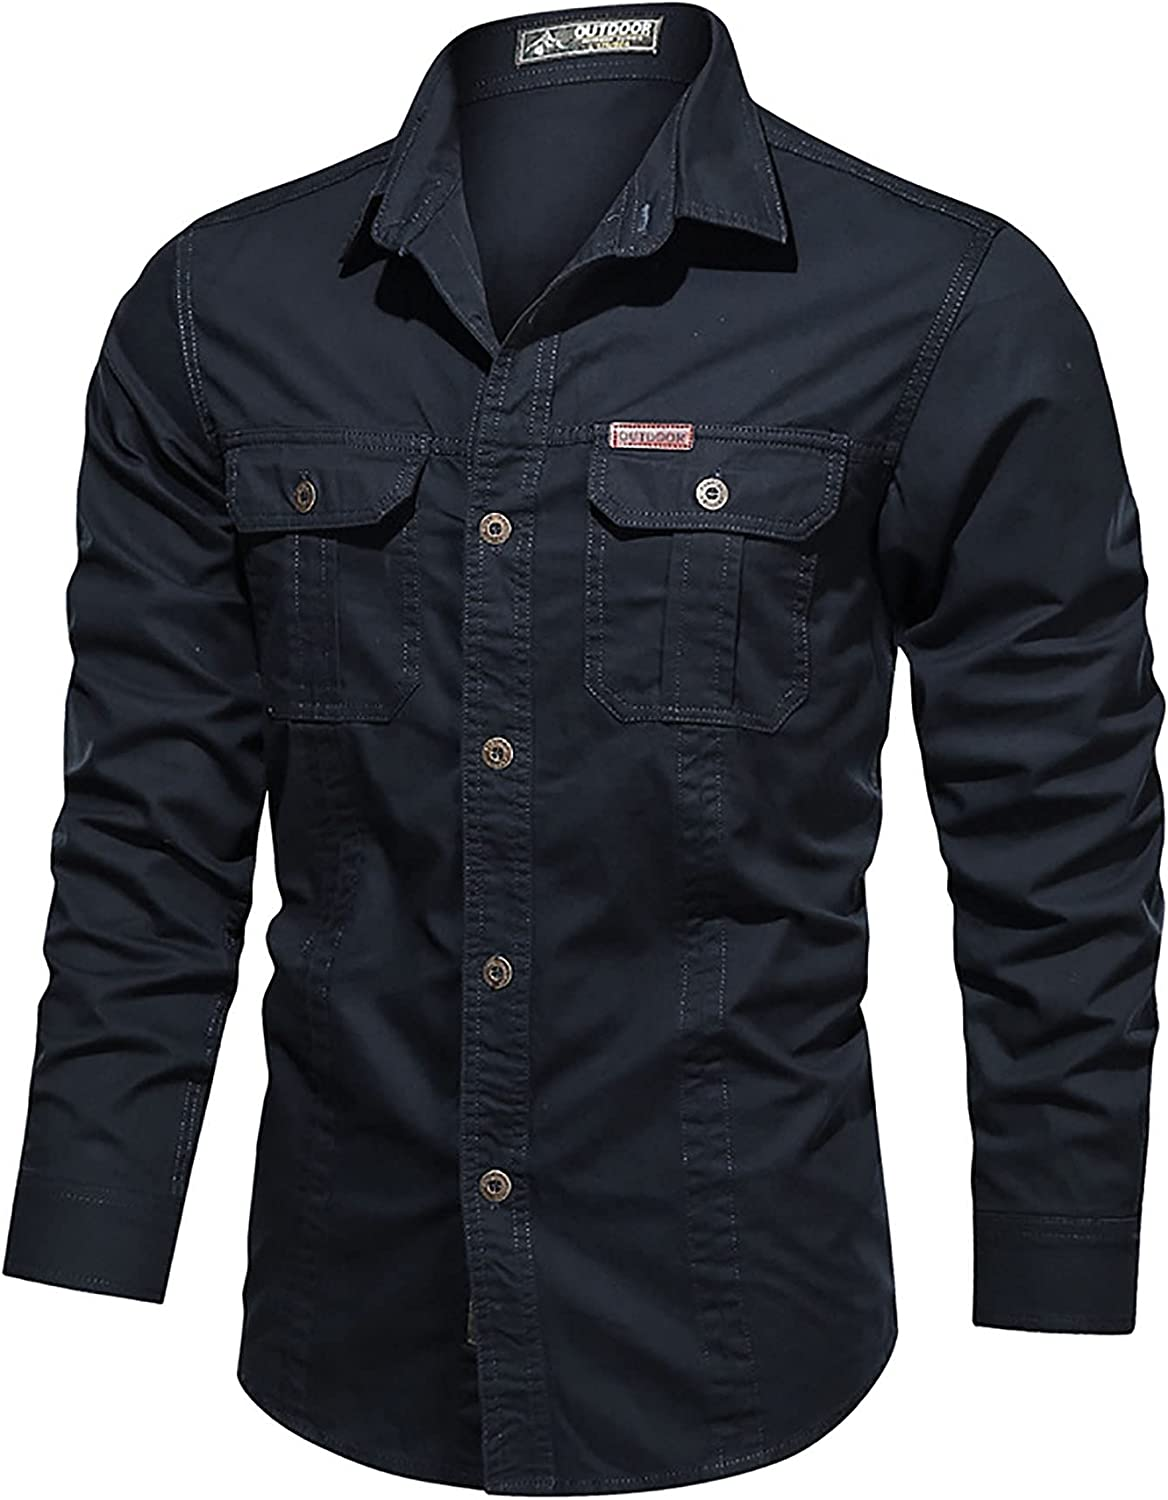 LZJDS Men ' s Plus Size Long Solid Shirts with Pocket Casual Button Down Protection Work Shirts